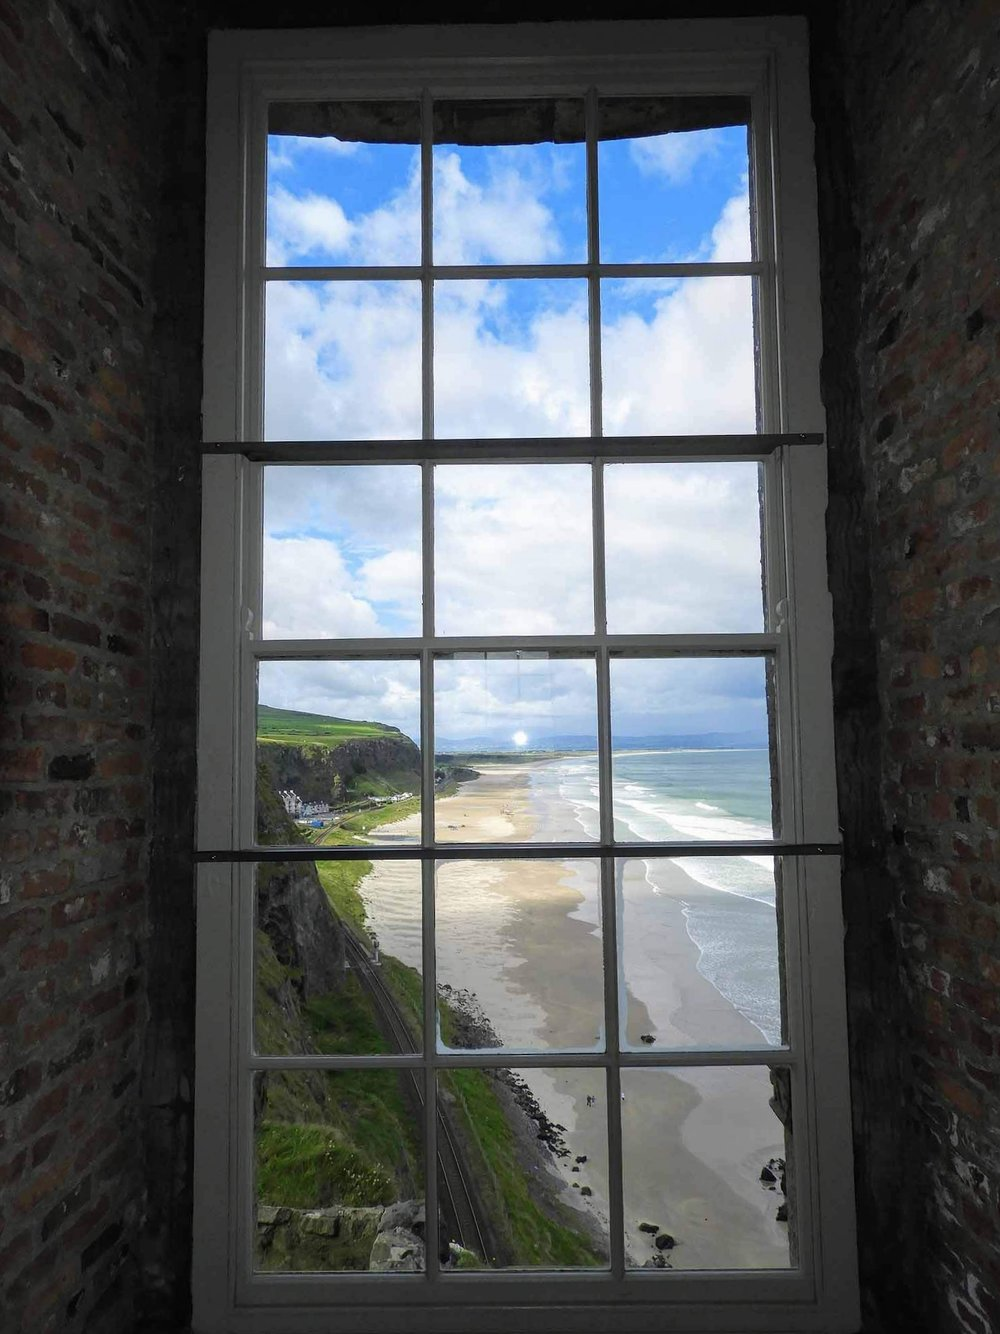 northern-ireland-coast-downhill-demesne-national-trust-window-view.jpg